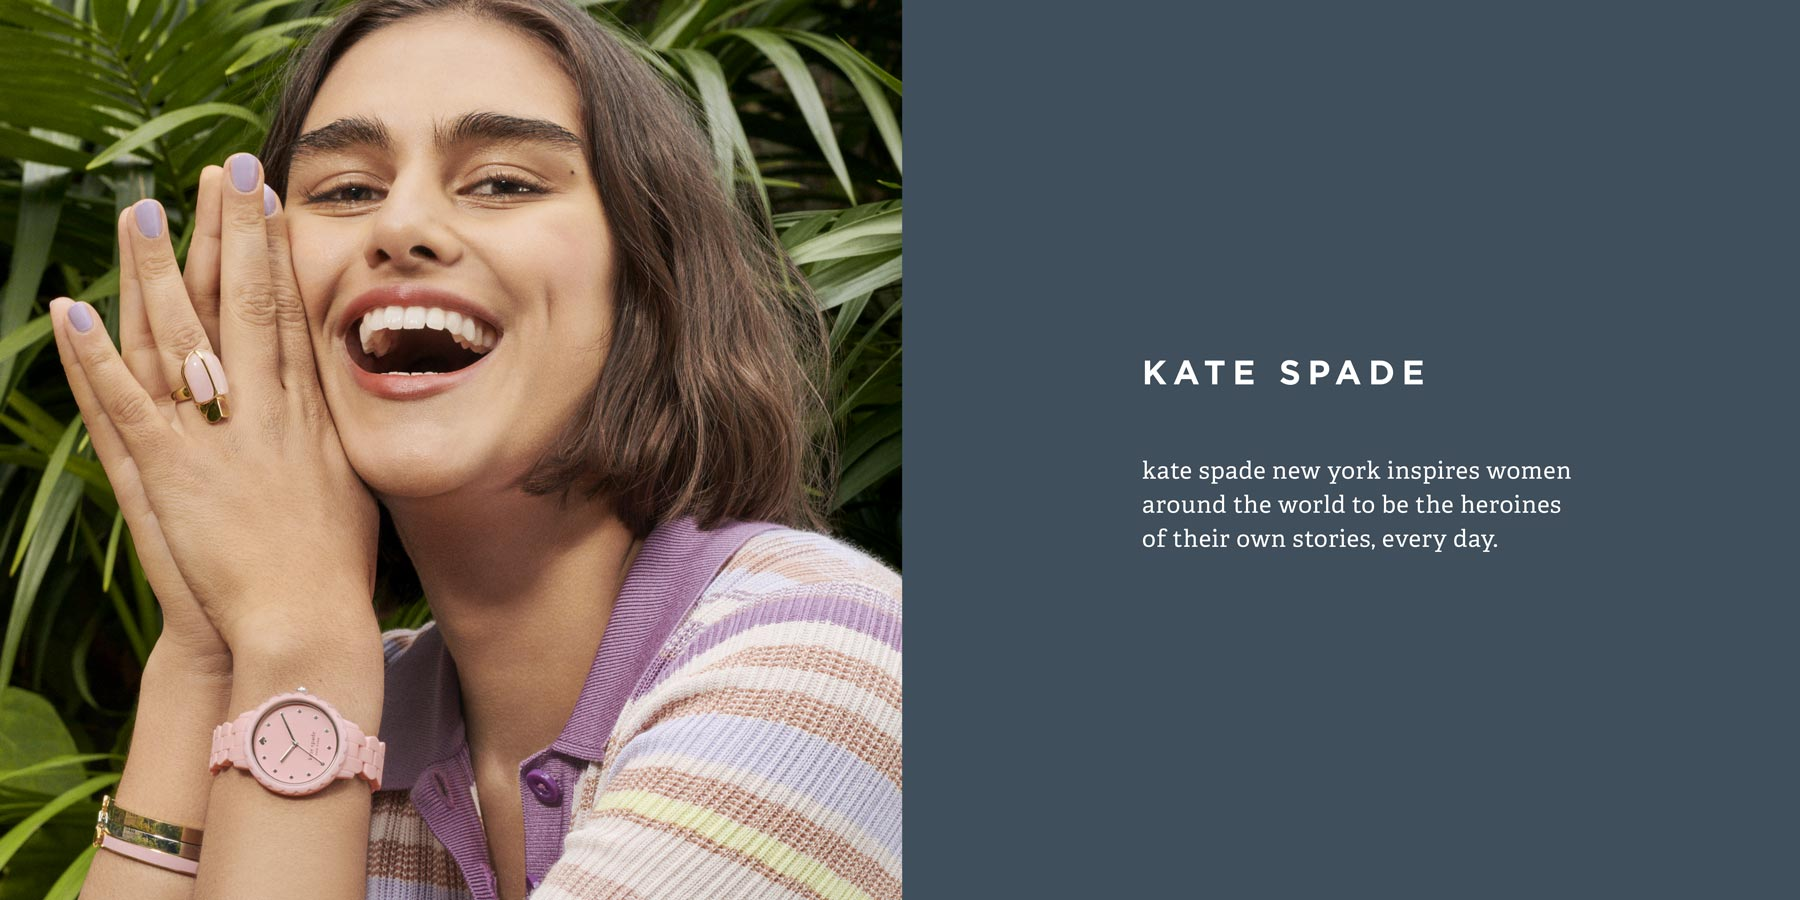 kate spade new york inspires women around the world to be the heroines of their own stories, every day.